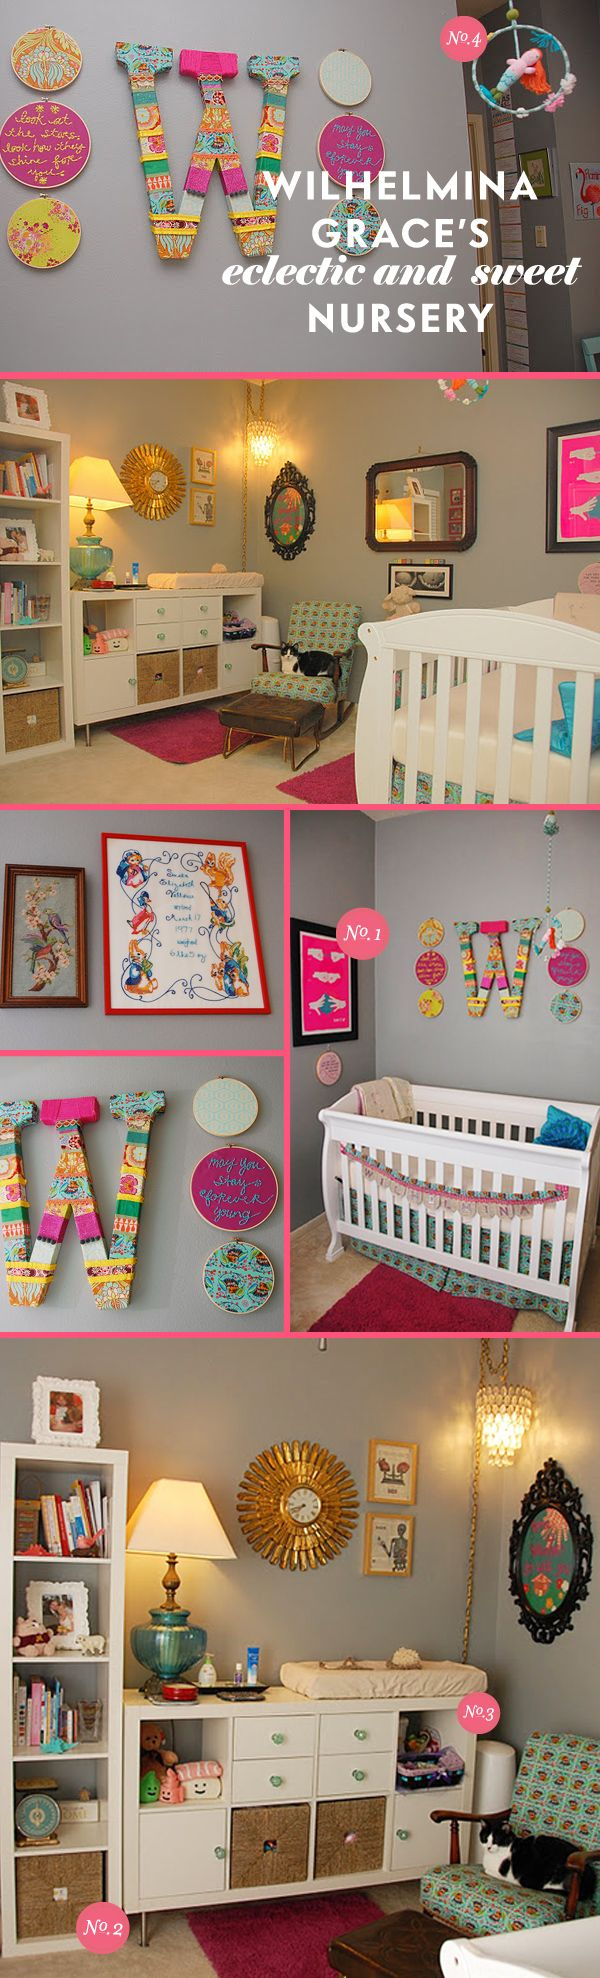 lots of things in this eye candy nursery room will grow with your child. very eclectic and sweet design.